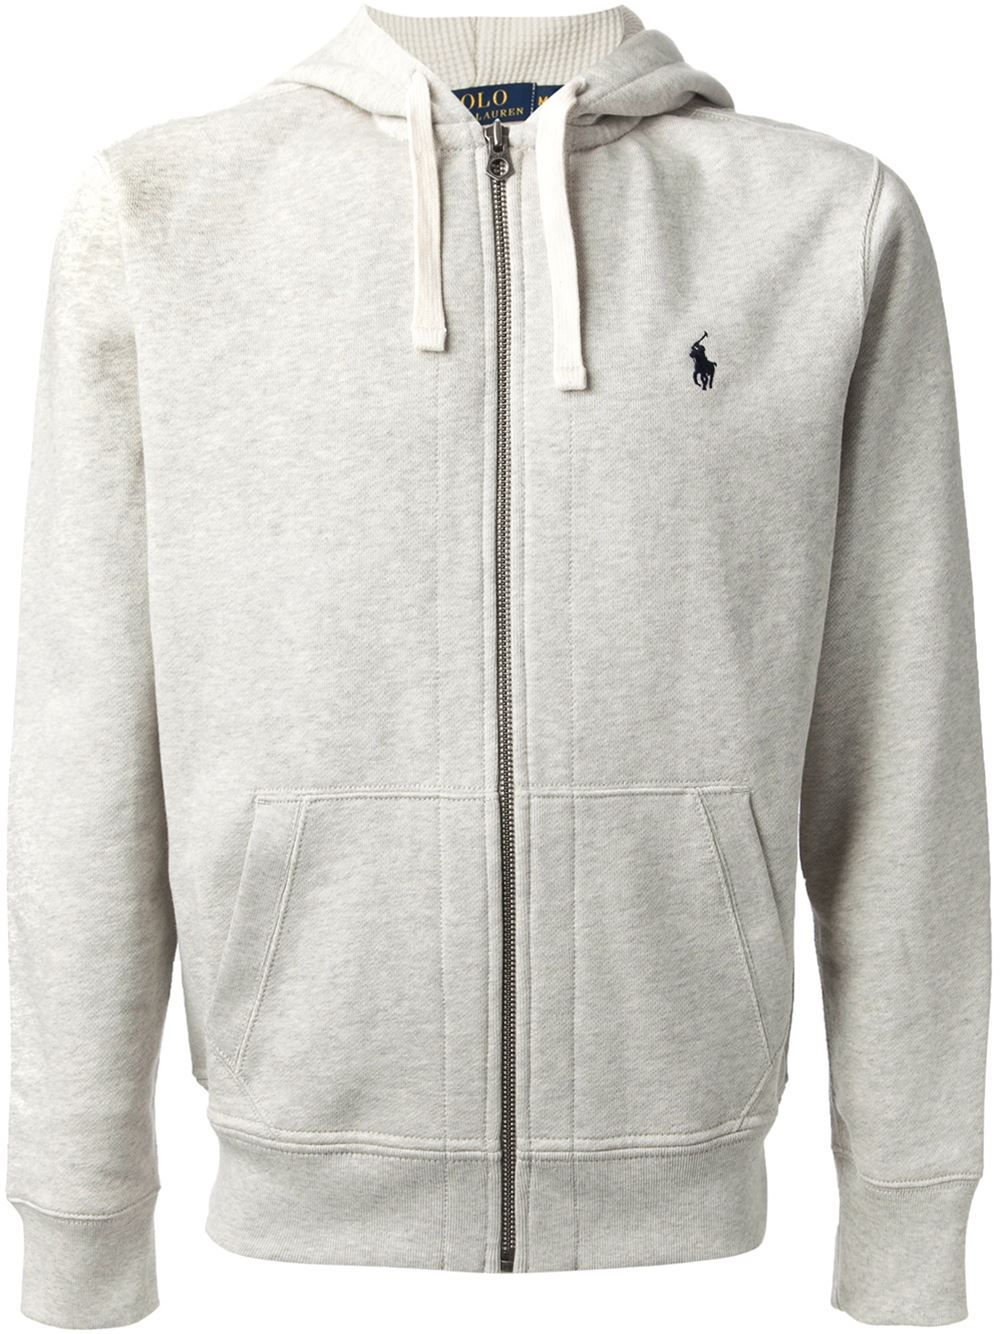 Polo Ralph Lauren Zip Up Hoodie In Gray For Men | Lyst